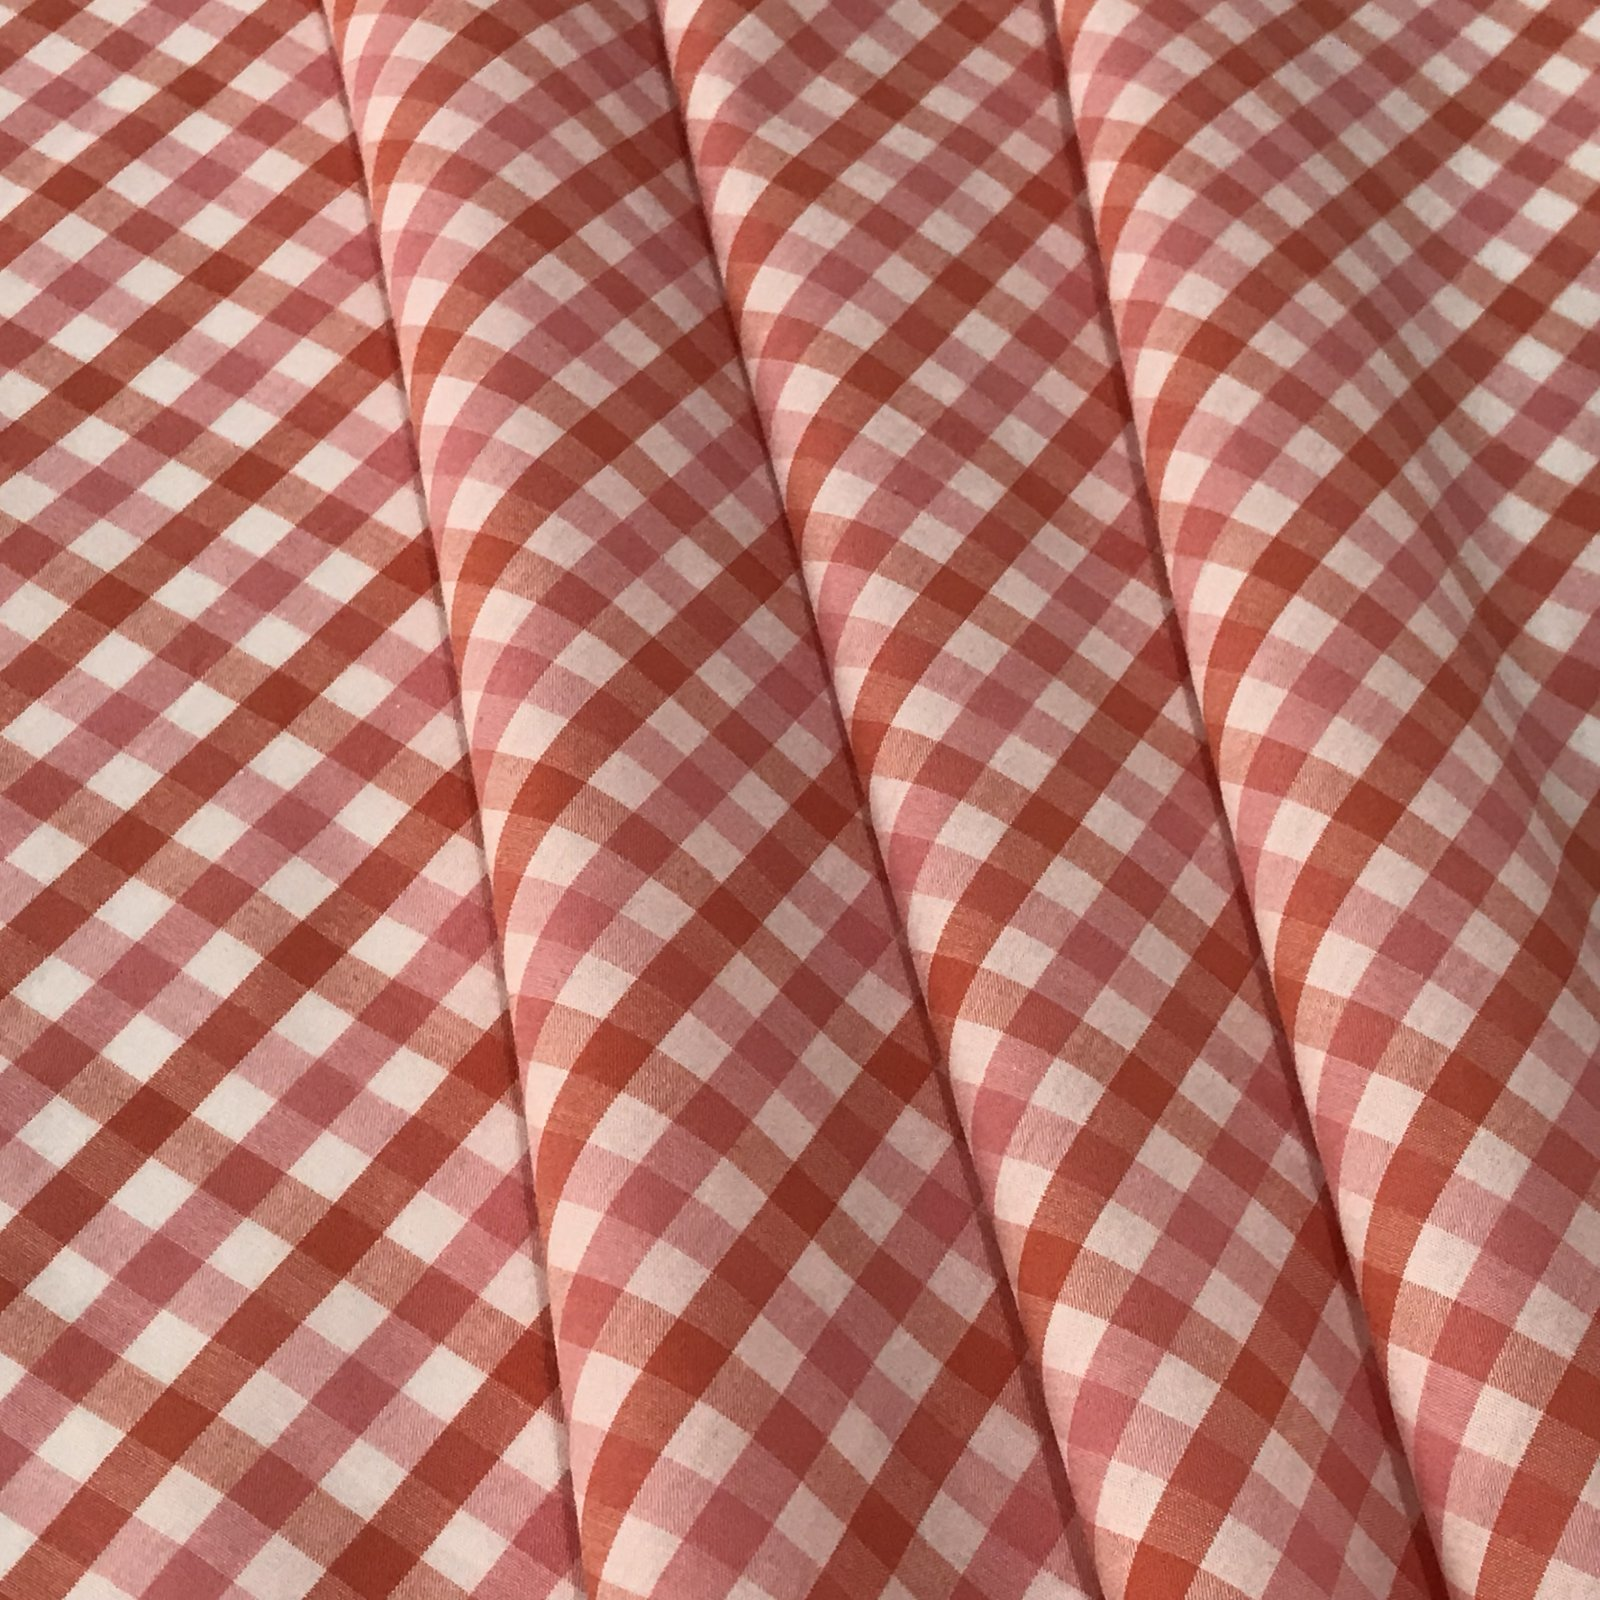 Cotton Gingham - Patio Party